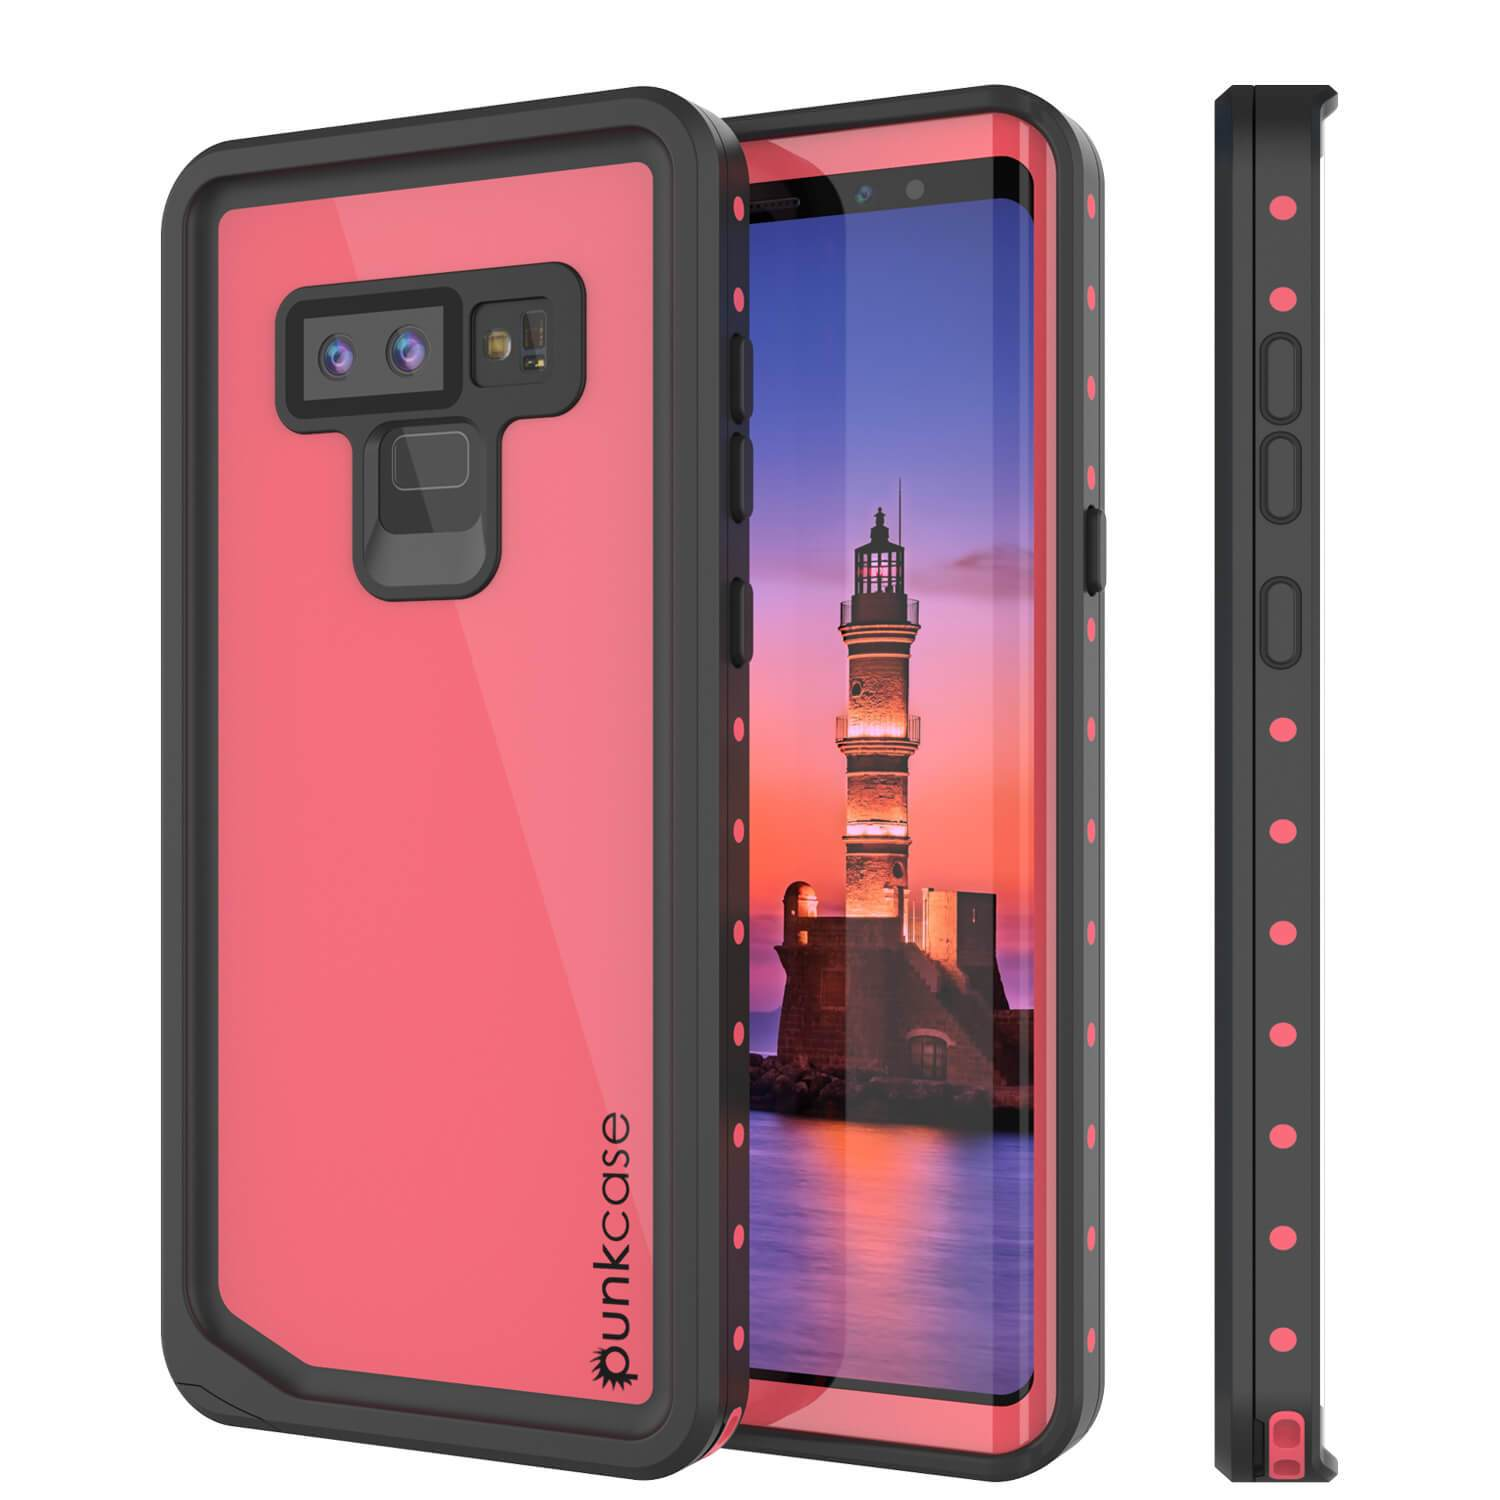 Galaxy Note 9 Waterproof Case PunkCase StudStar Pink Thin 6.6ft Underwater Shock/Snow Proof